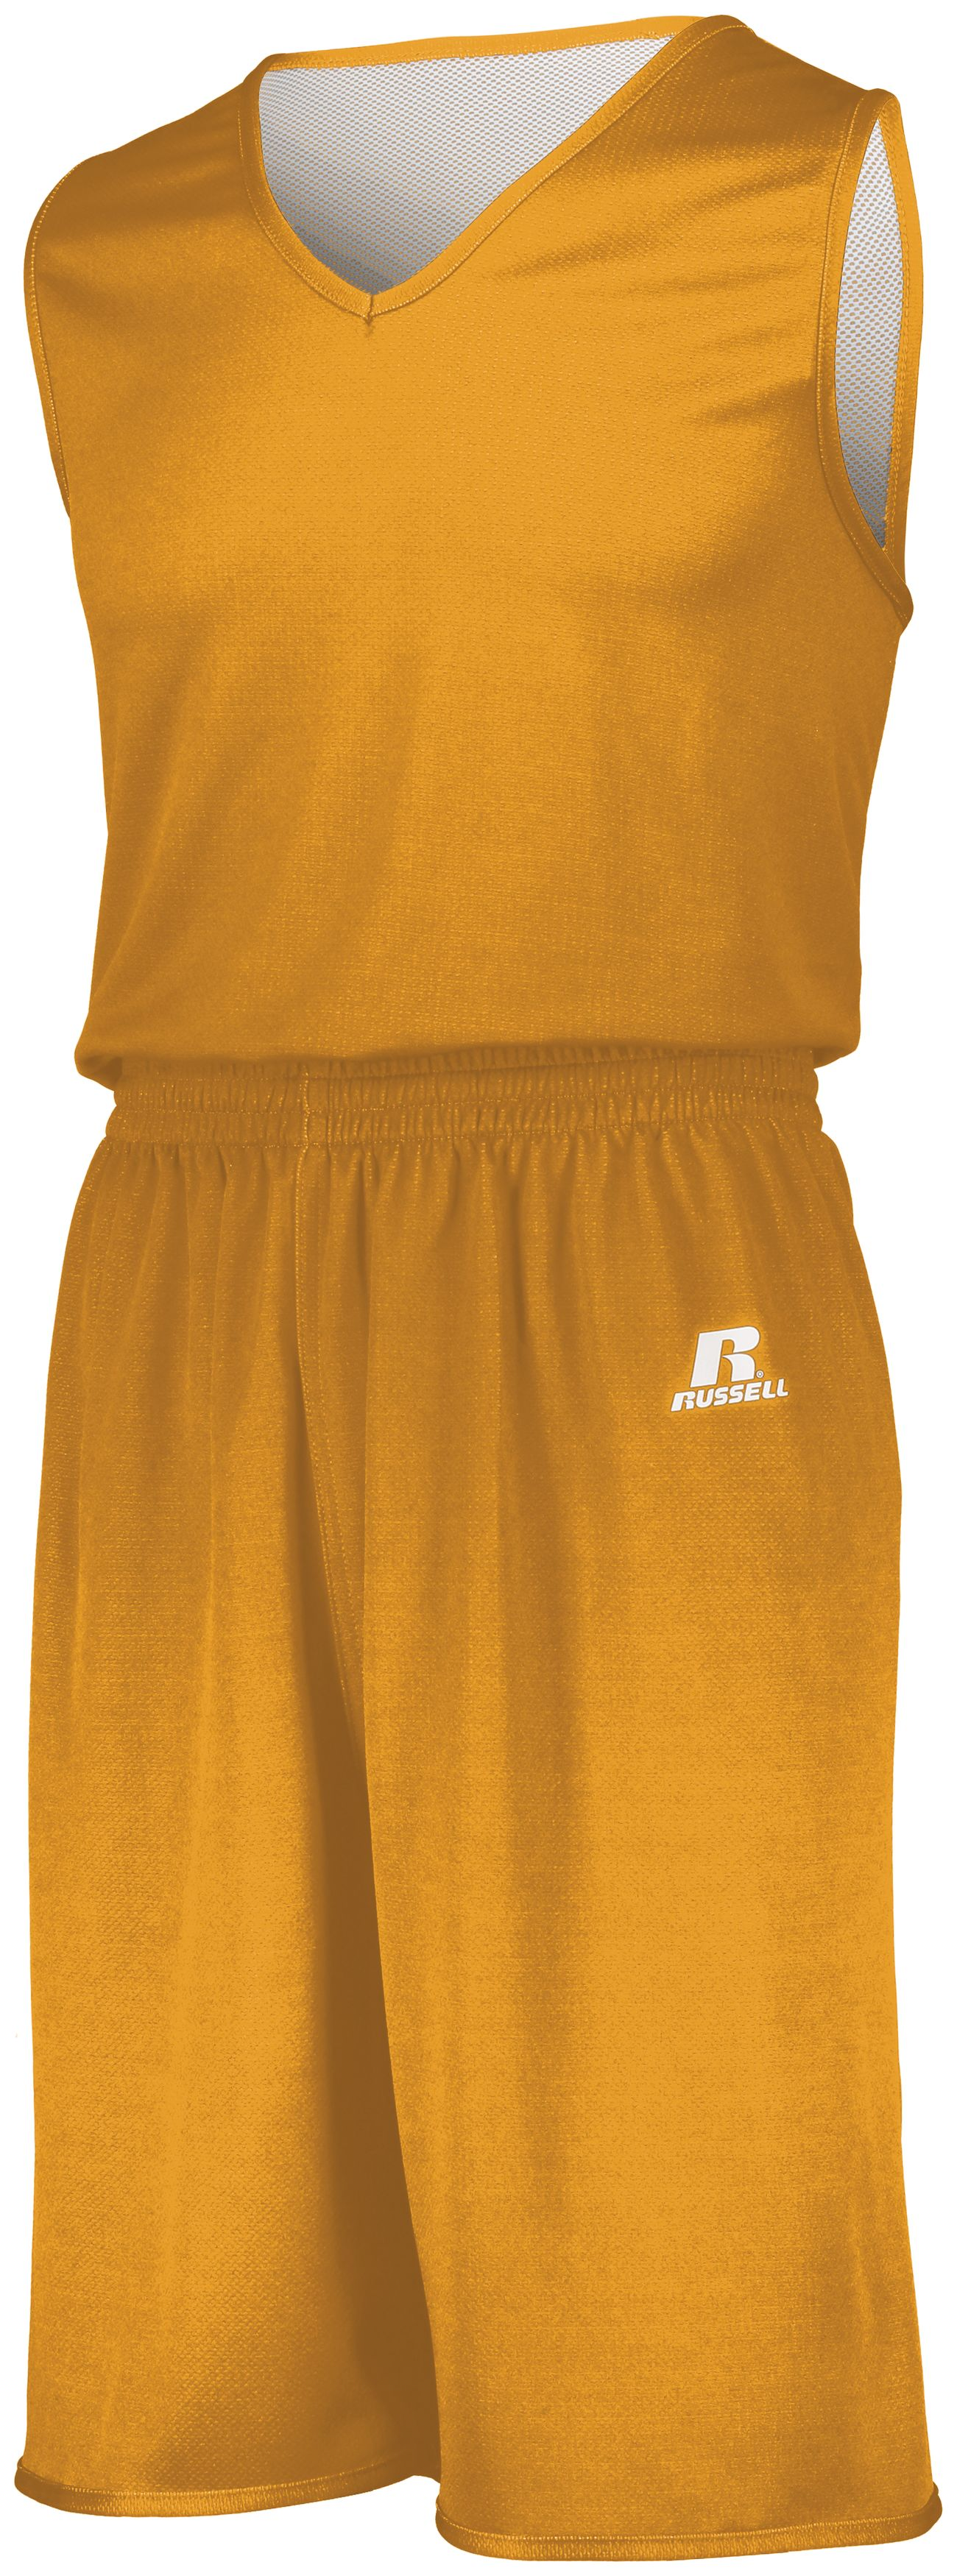 Youth Undivided Solid Single Ply Reversible Shorts - GOLD/WHITE